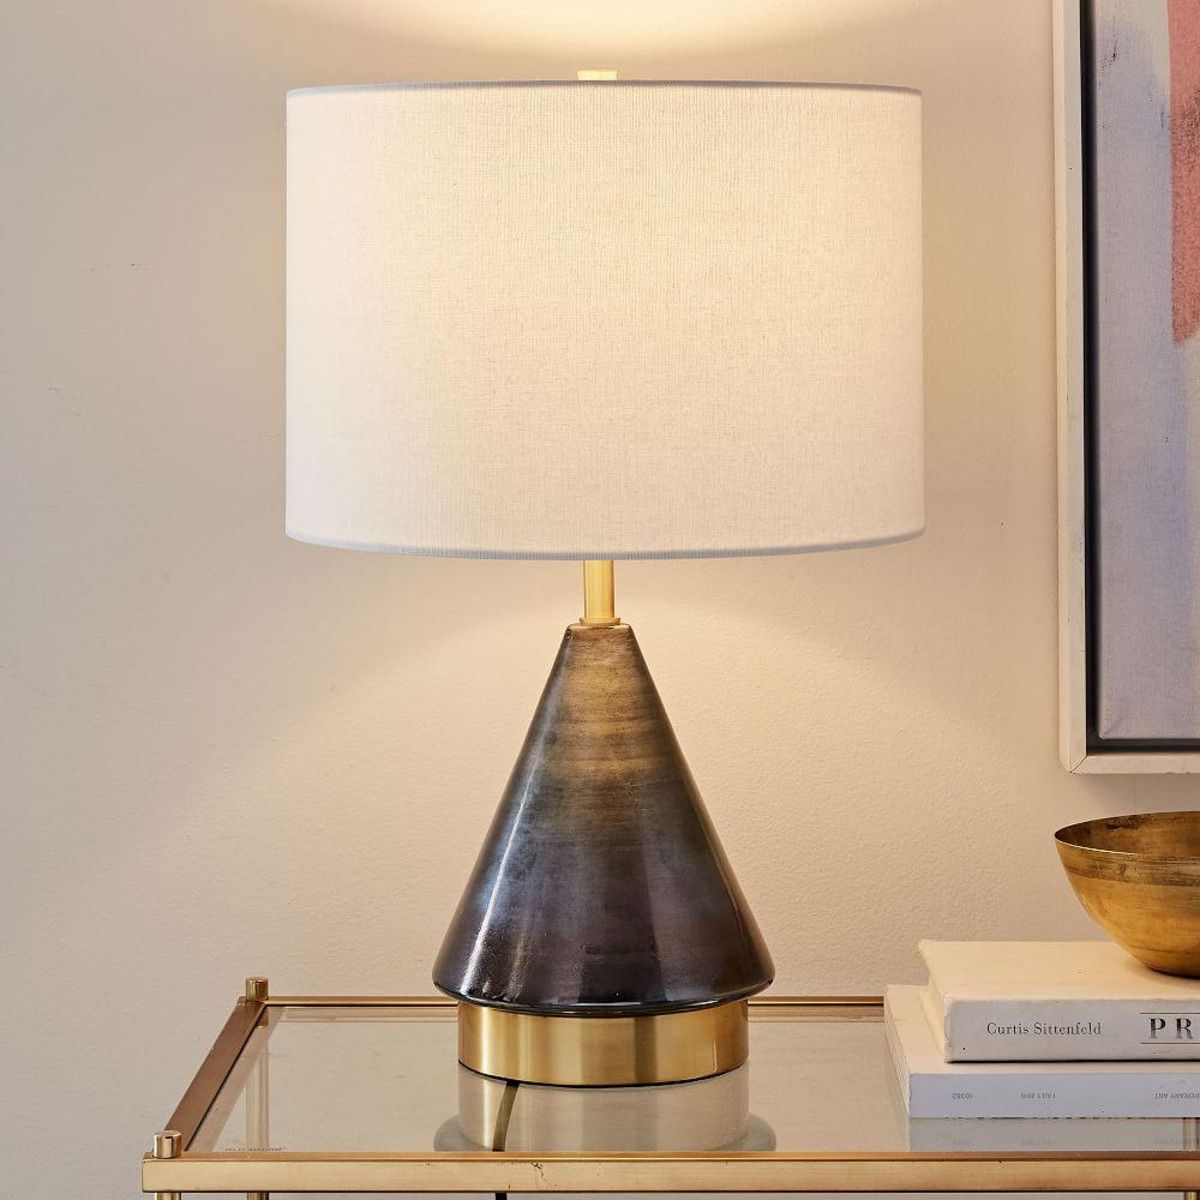 Metalized Glass Table Lamp Usb Small Grey West Elm Uk Glass Table Lamp Modern Table Lamp Table Lamp